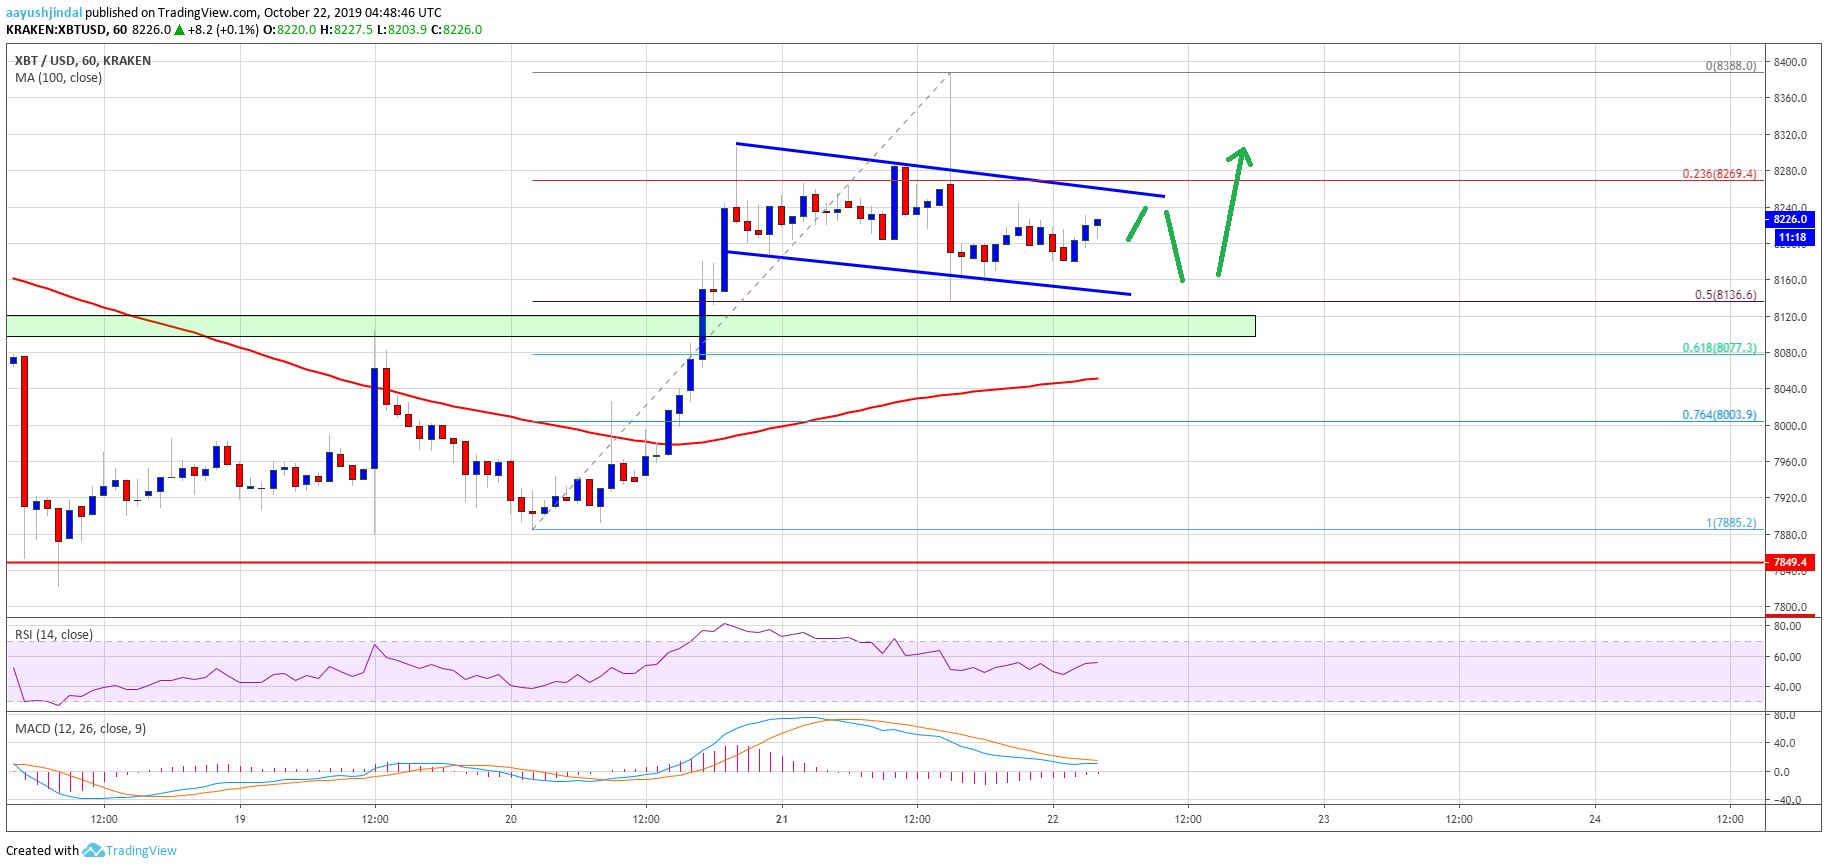 Bitcoin (BTC) Price Eyeing Another Leg Higher To $8,500